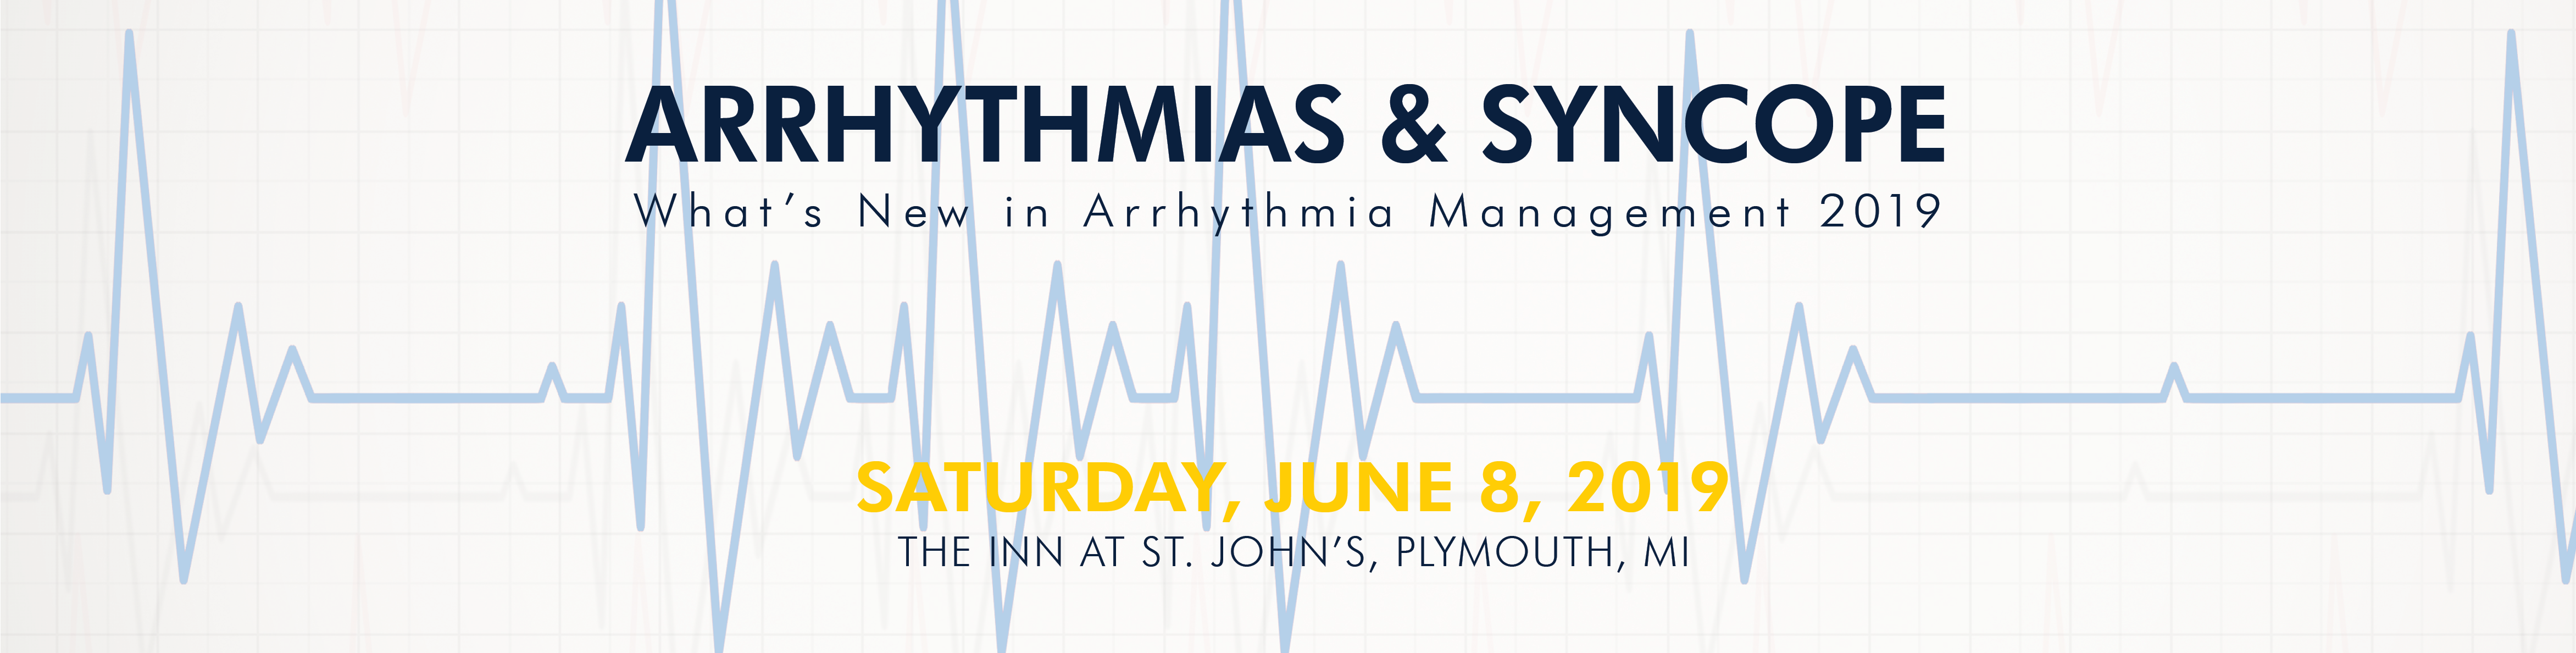 Update on Arrhythmias and Syncope